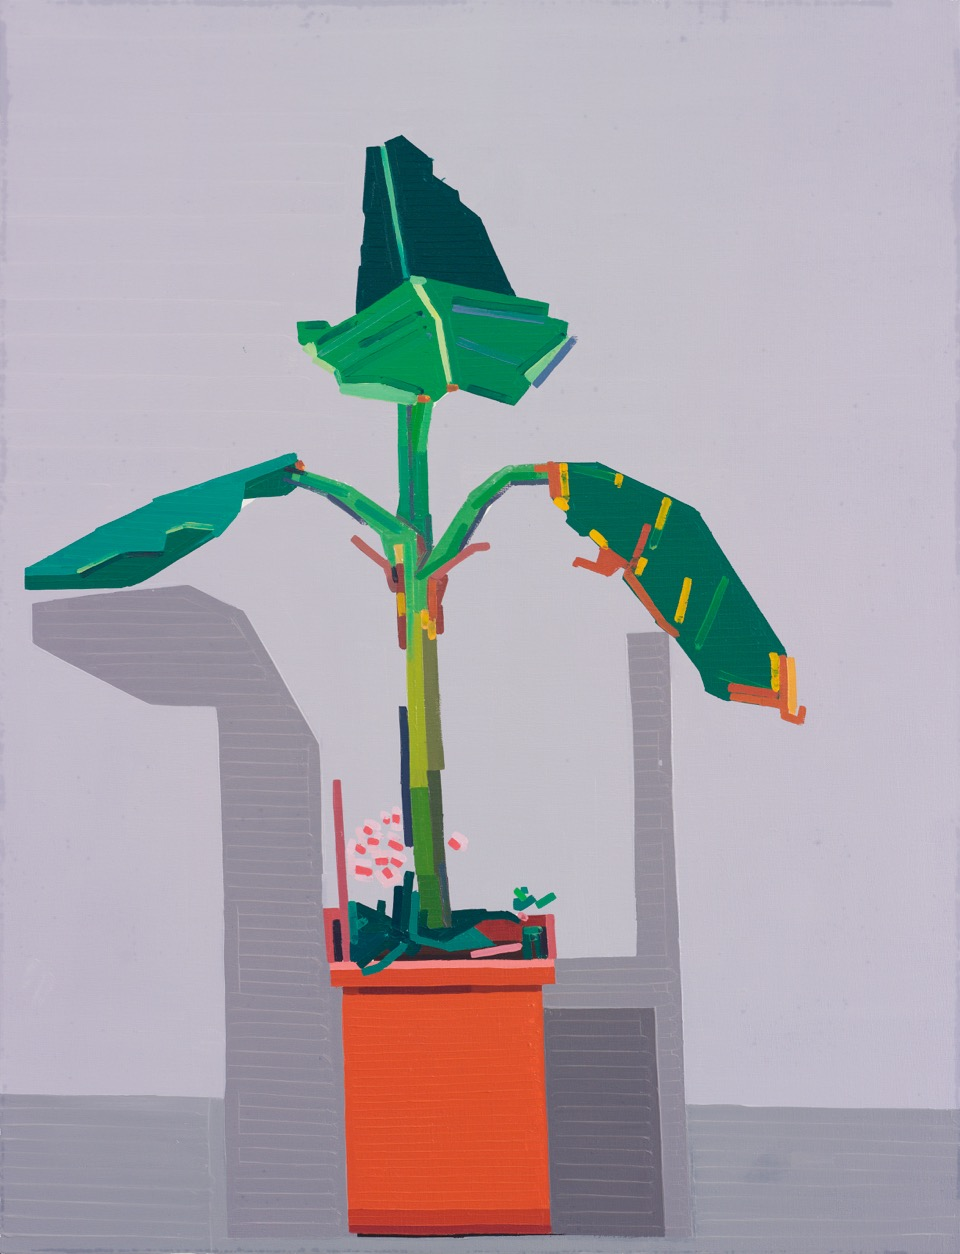 Guy Yanai. End of Europe (Plant in Corner), 2015